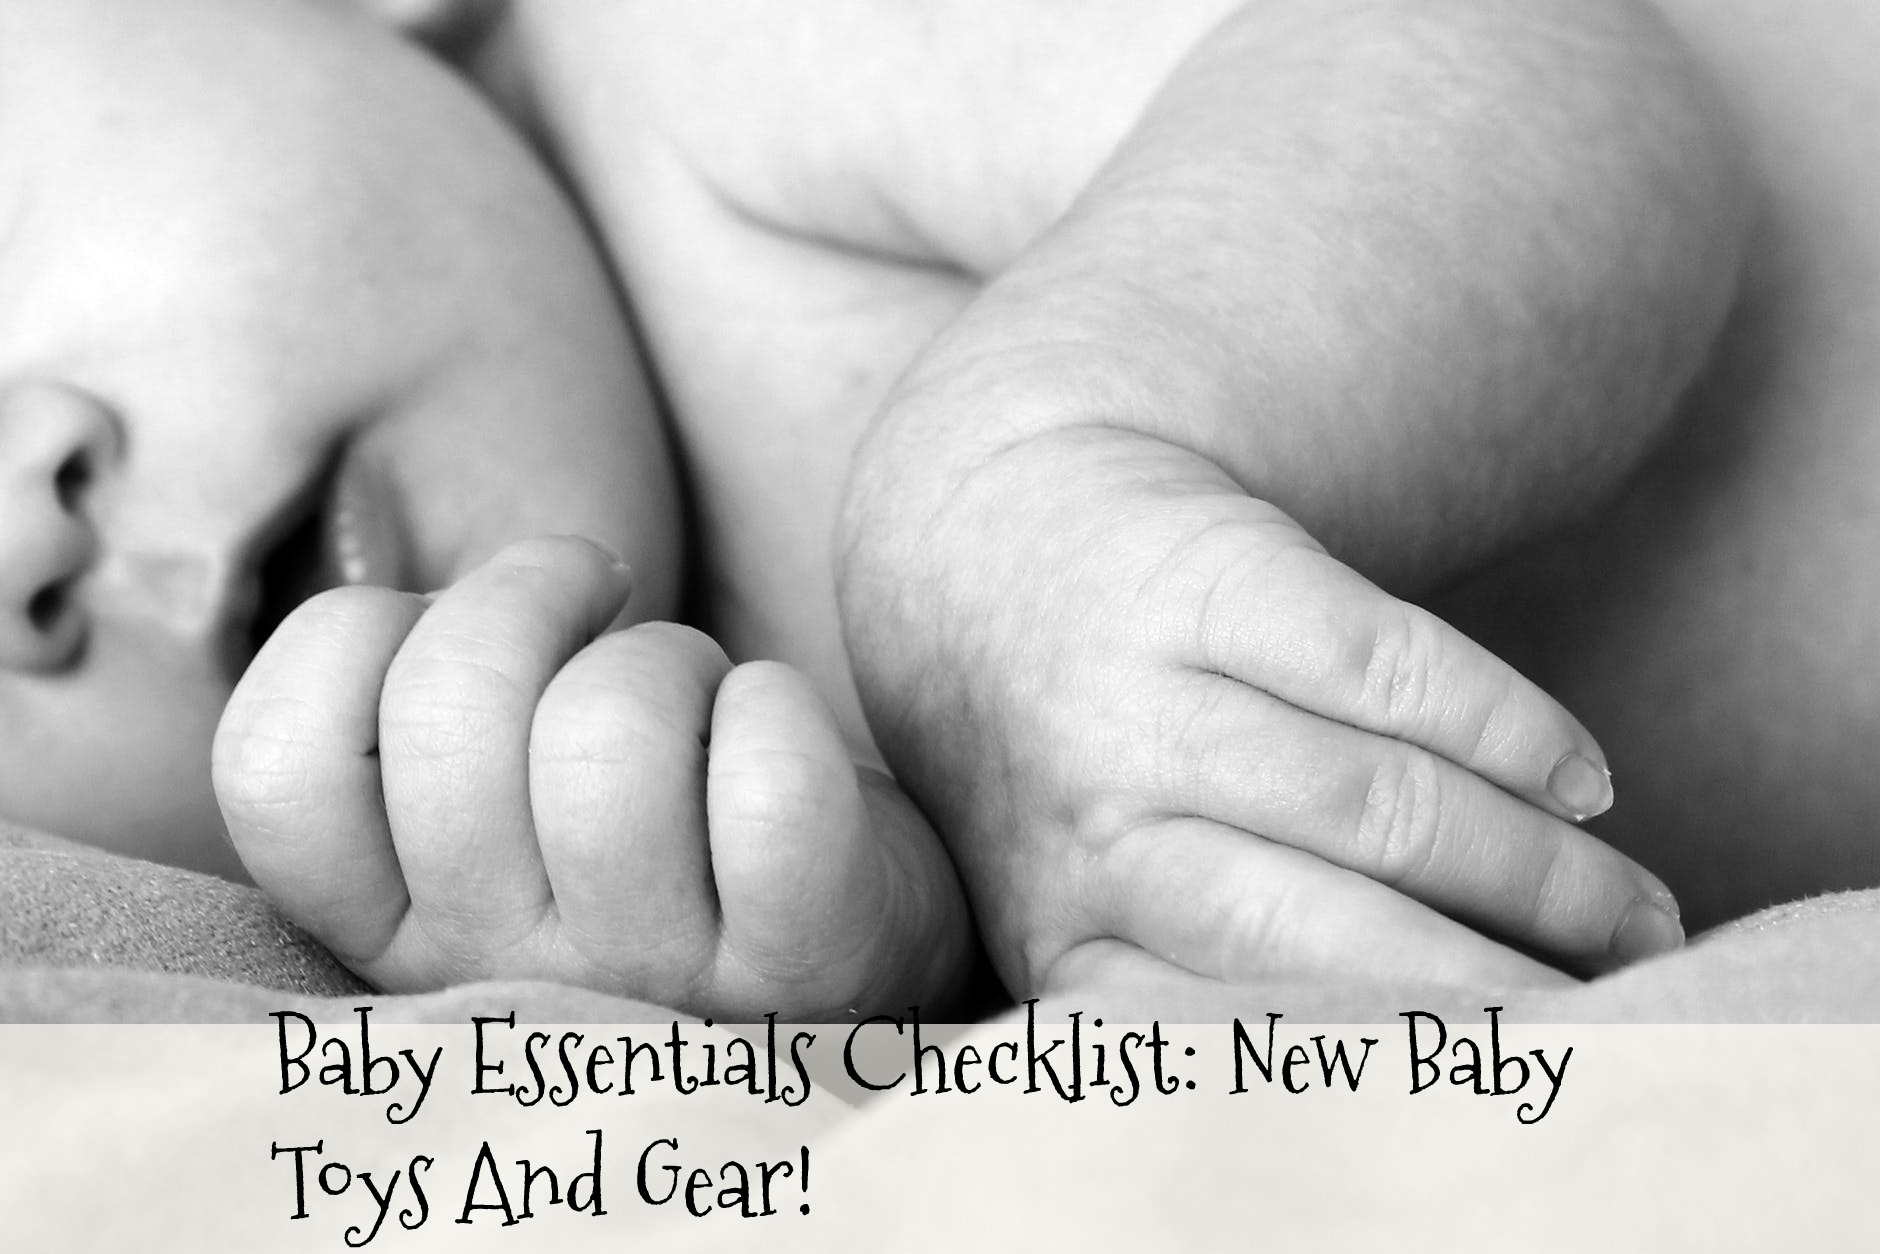 Baby Essentials Checklist: New Baby Toys And Gear!